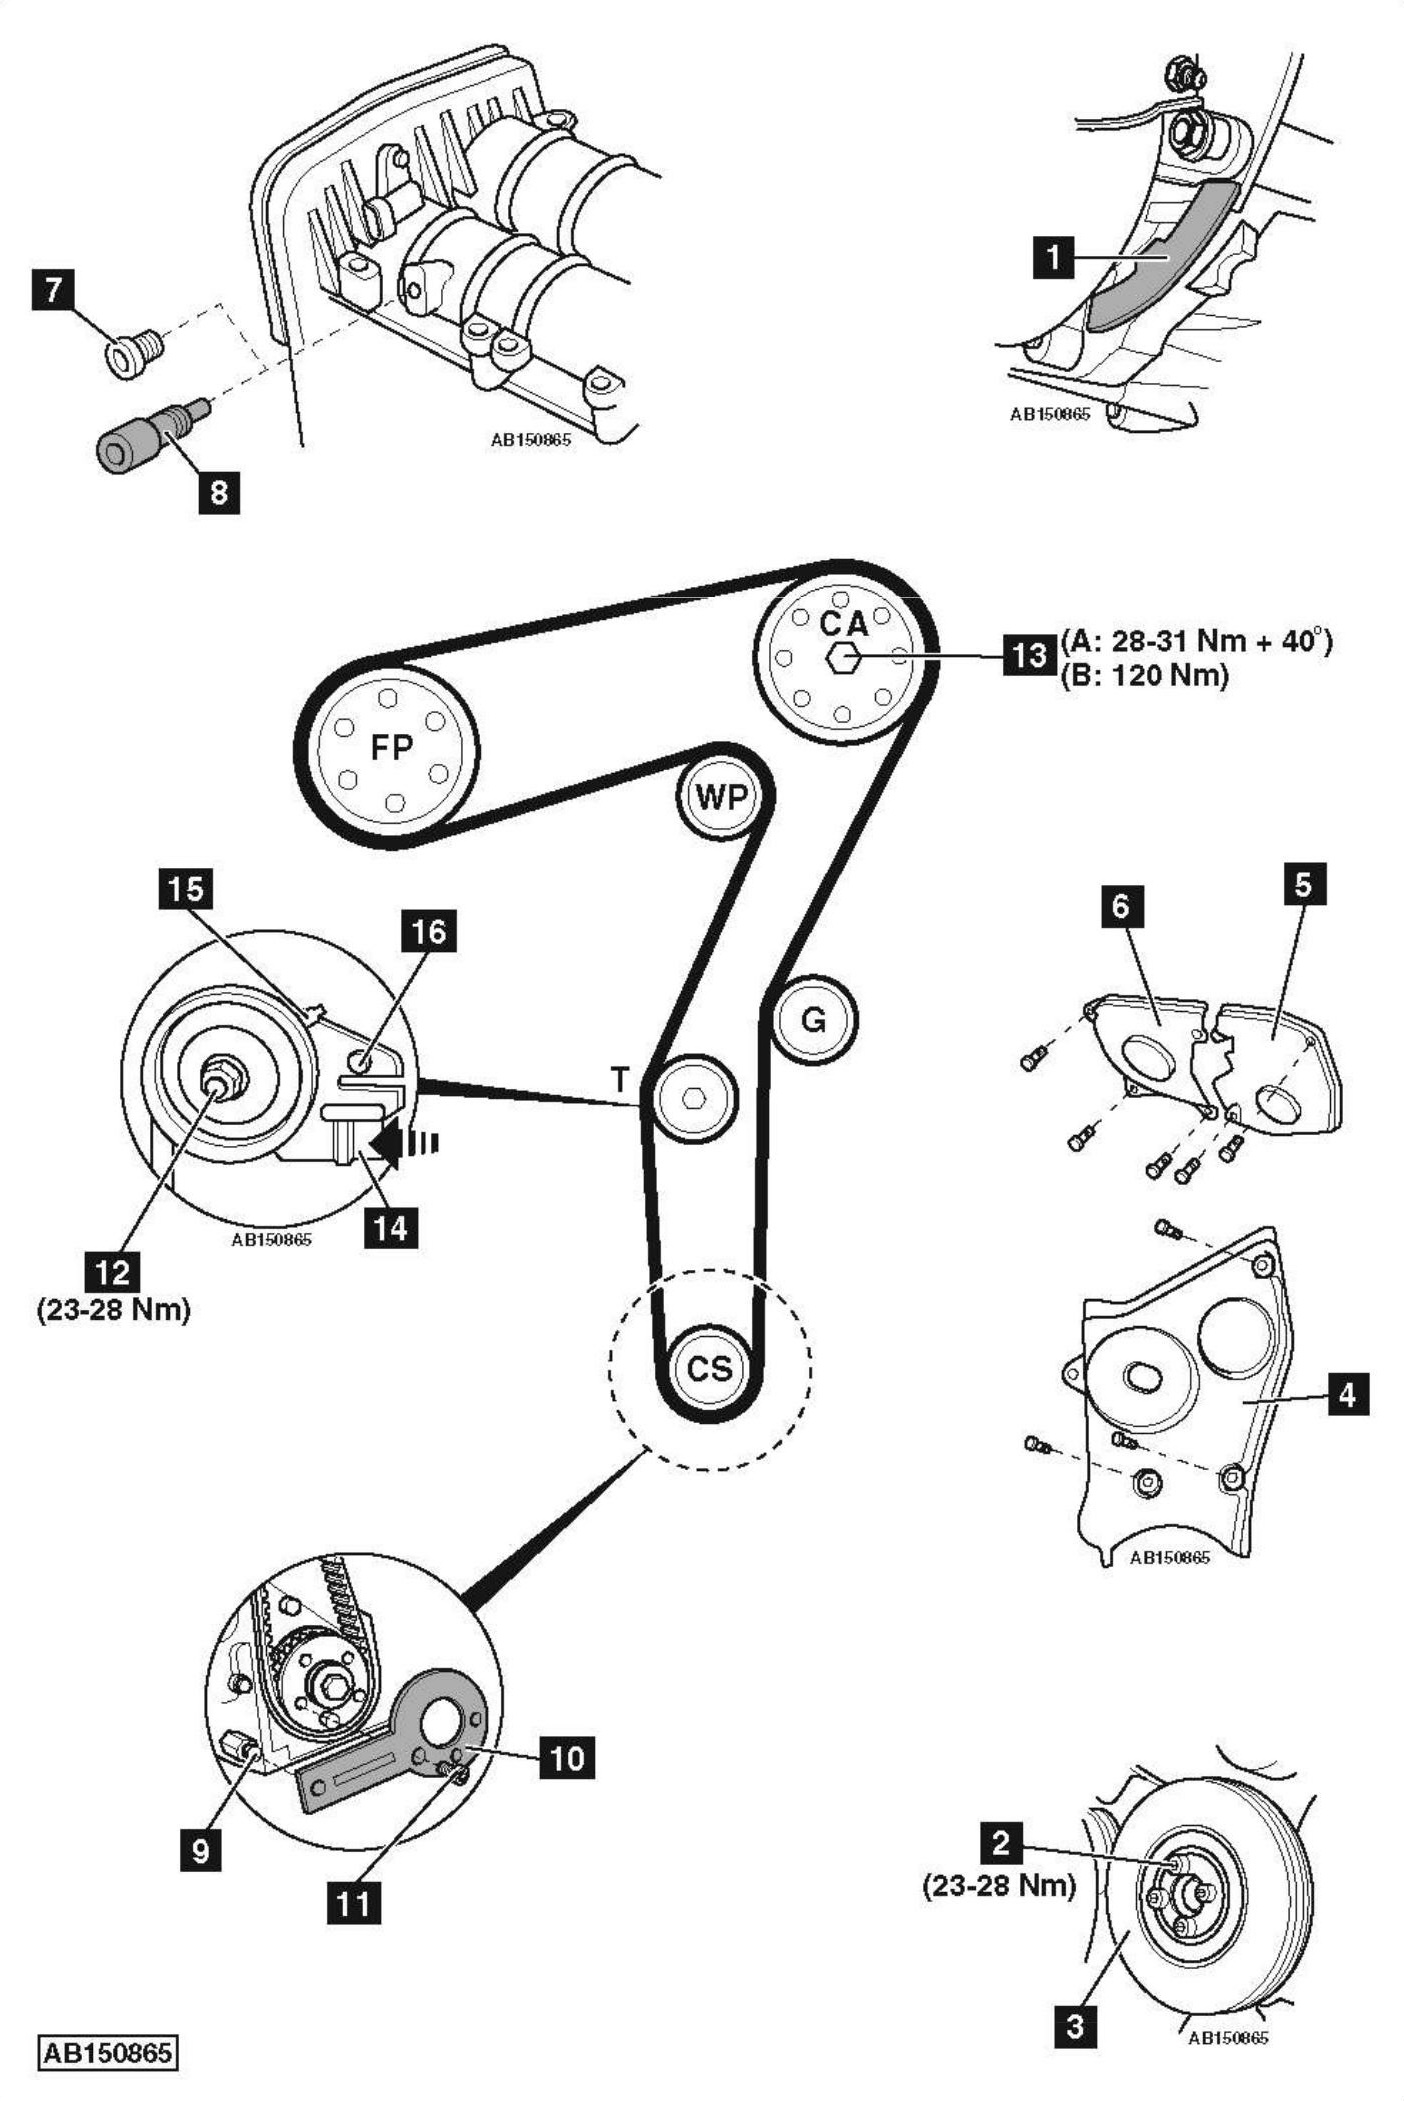 2007 suzuki eiger engine diagram  suzuki  auto wiring diagram